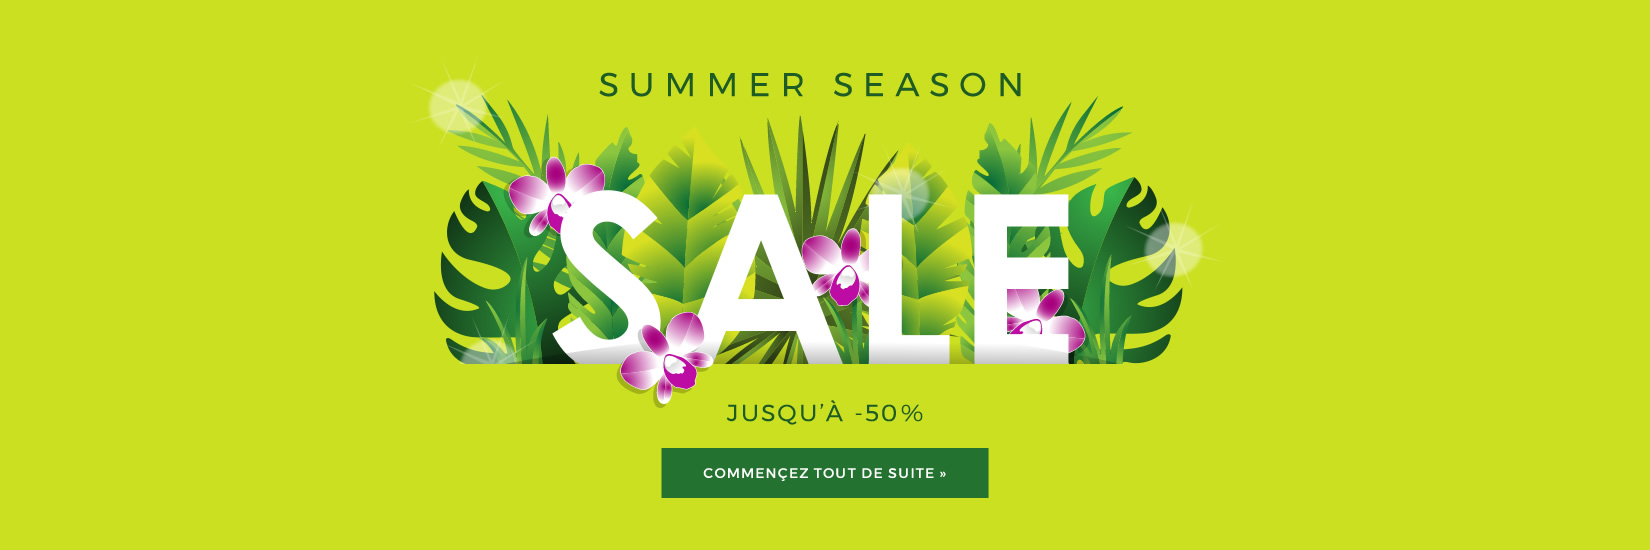 SUMMER SEASON SALE JUSQU'À -50% EXPIRE LE 31.07